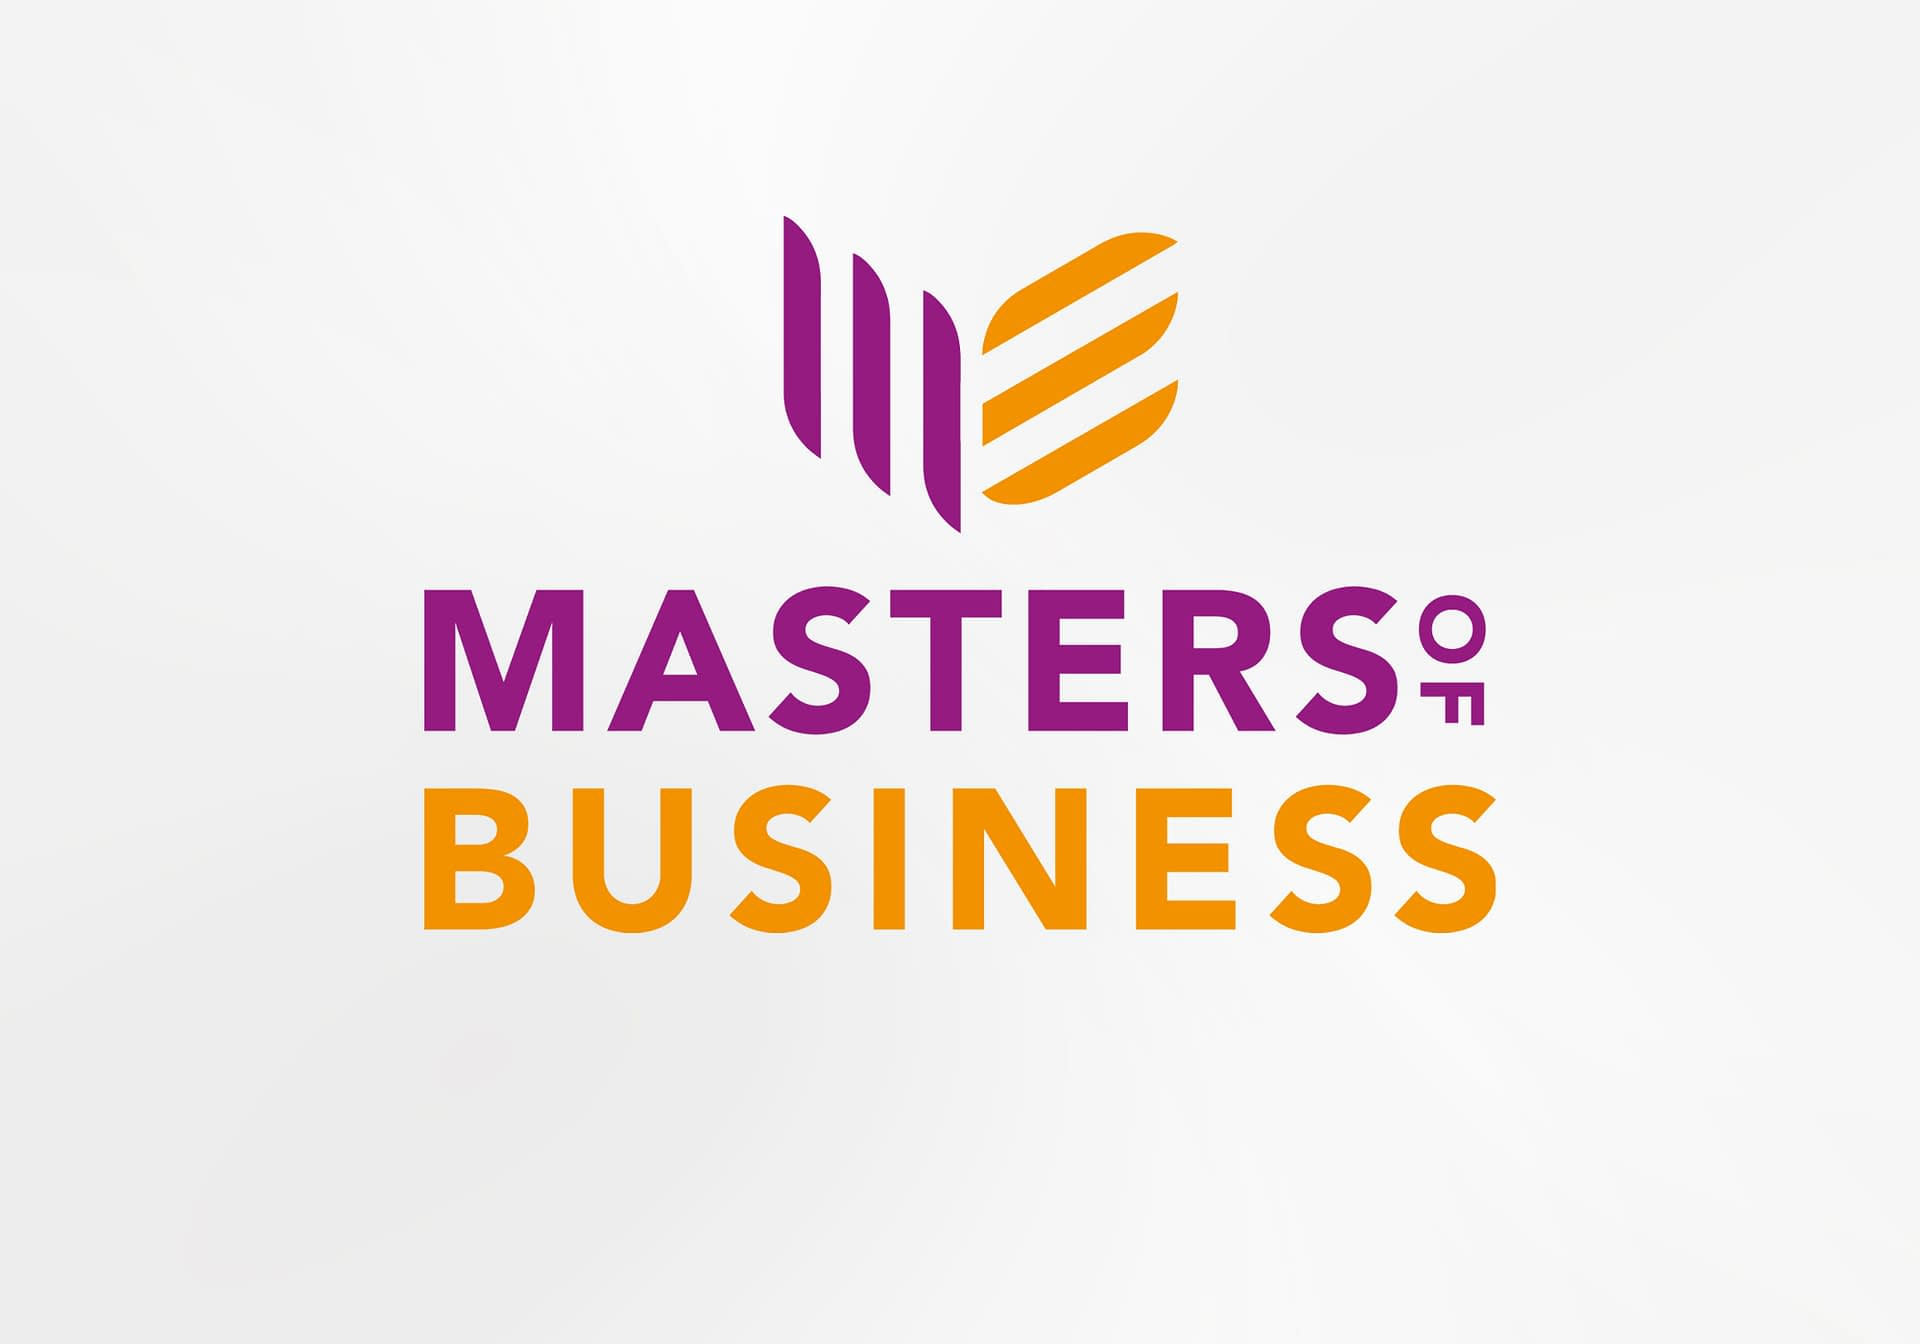 Masters of Business